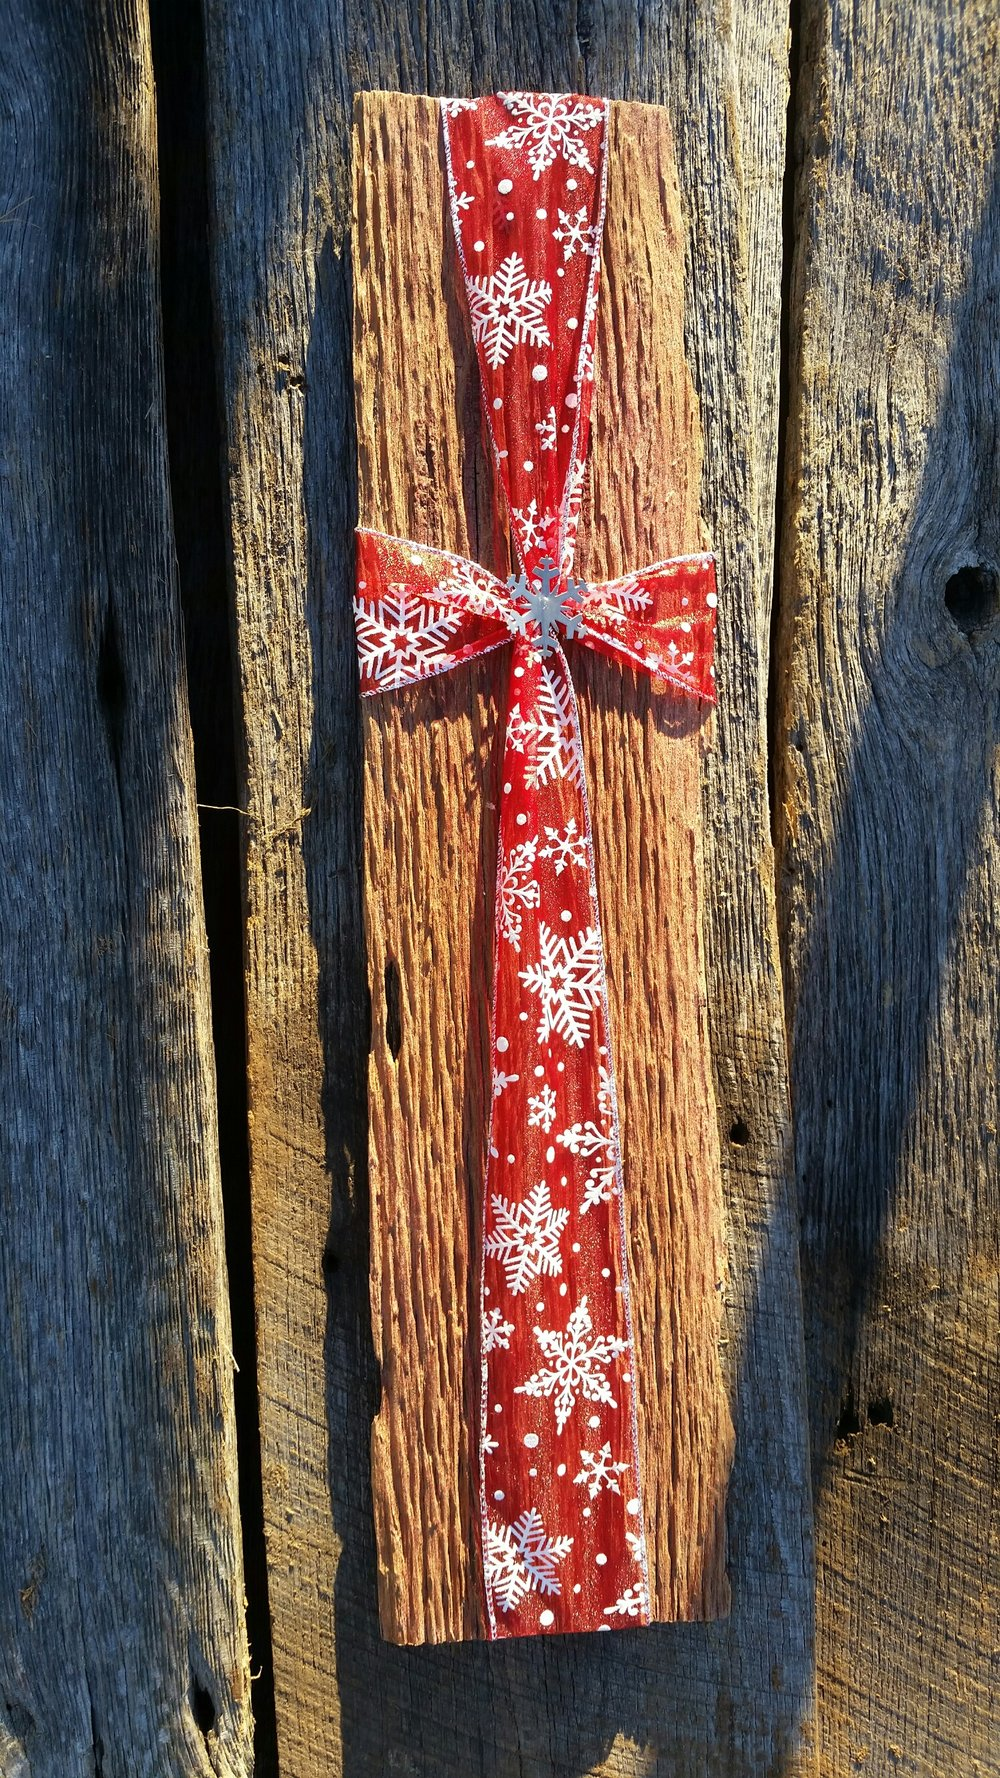 Reclaimed barn wood scrap holiday gift with authentic time weathered grain